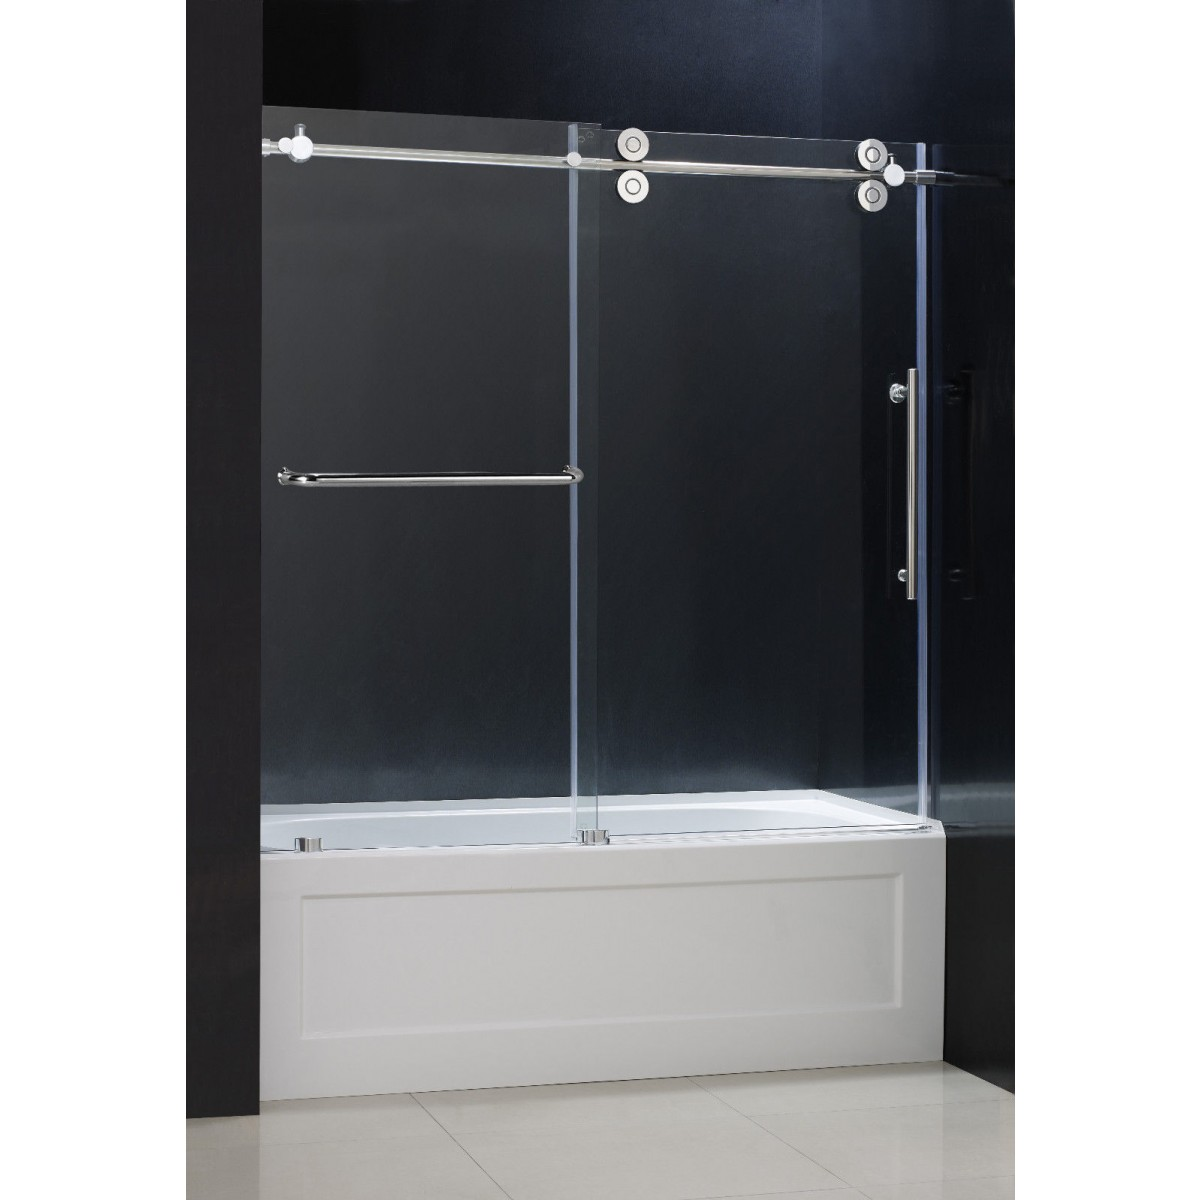 Bathroom tubs with glass doors - More Views